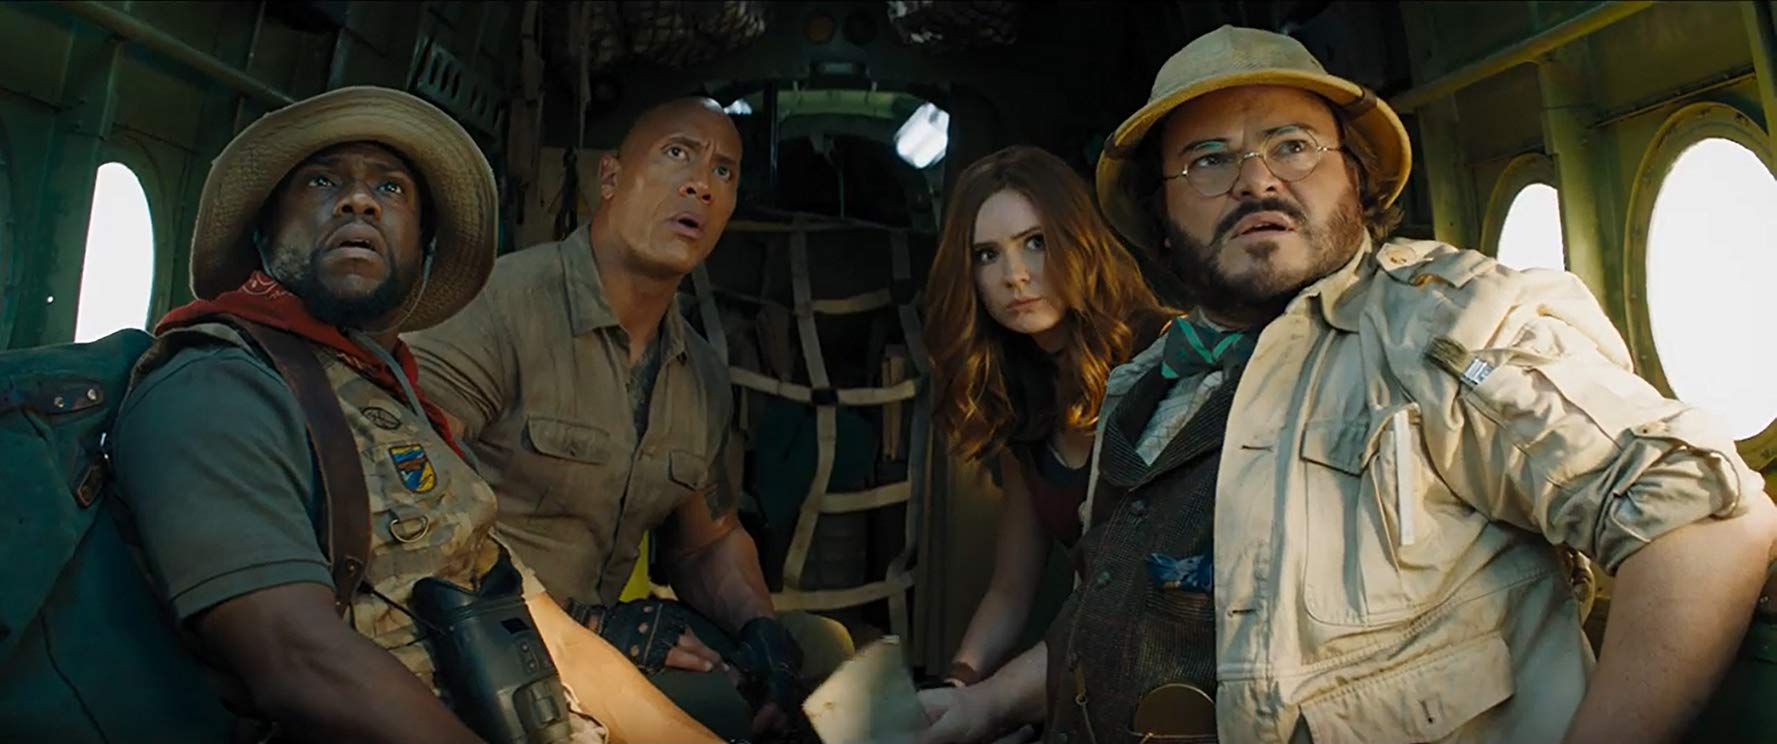 [News] JUMANJI: THE NEXT LEVEL Comes Home This March